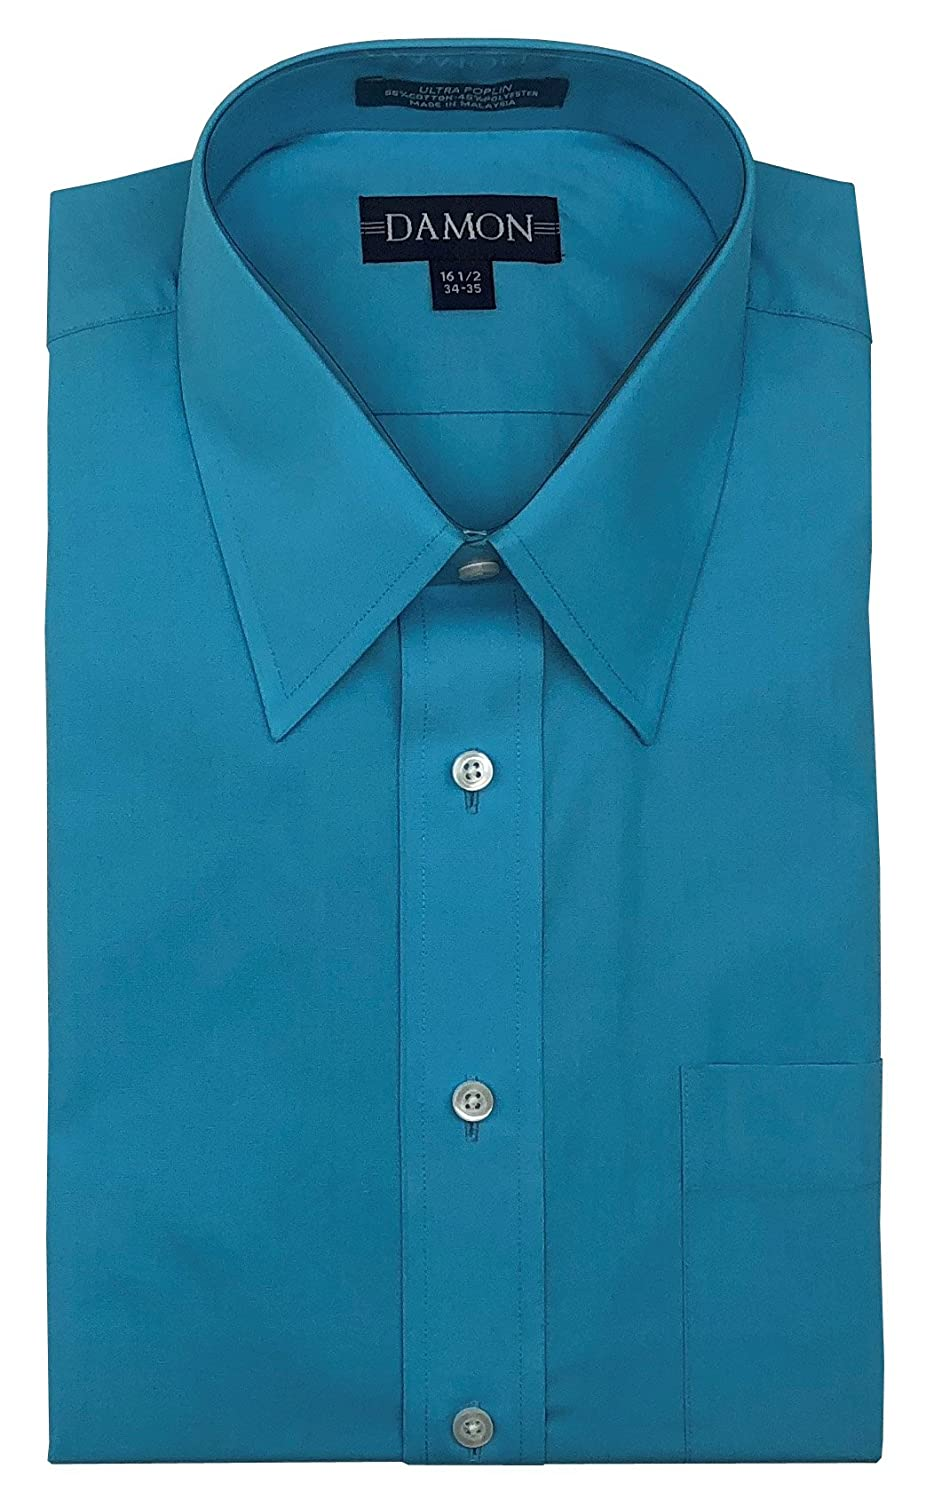 Damon Point Collar Solid Color Poplin Dress Shirt